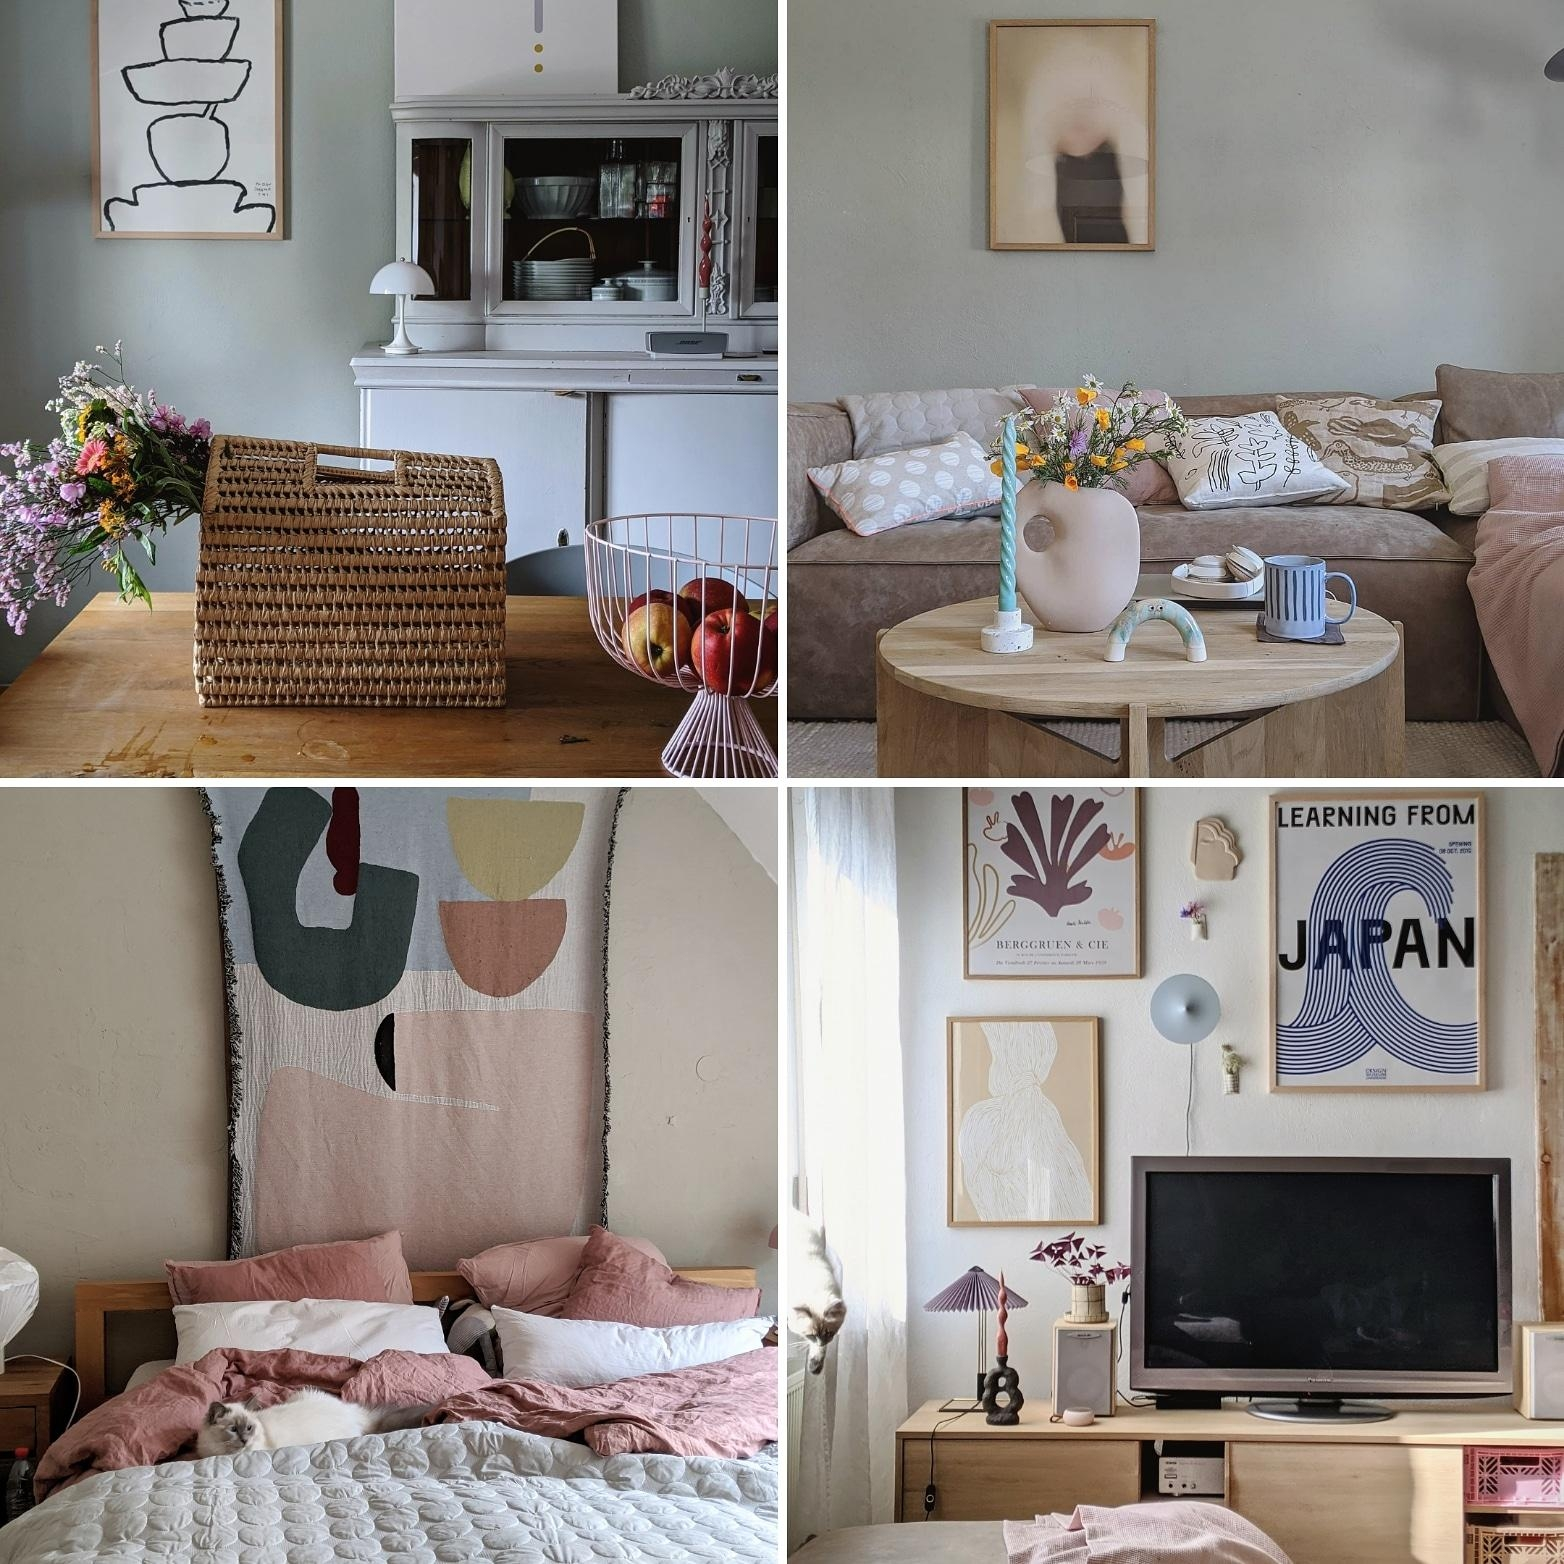 #juli#homedecor#homestory#living#intetiør#interior#altbau#couchstyle#decoration#tischdeko#hygge#scandinavisch